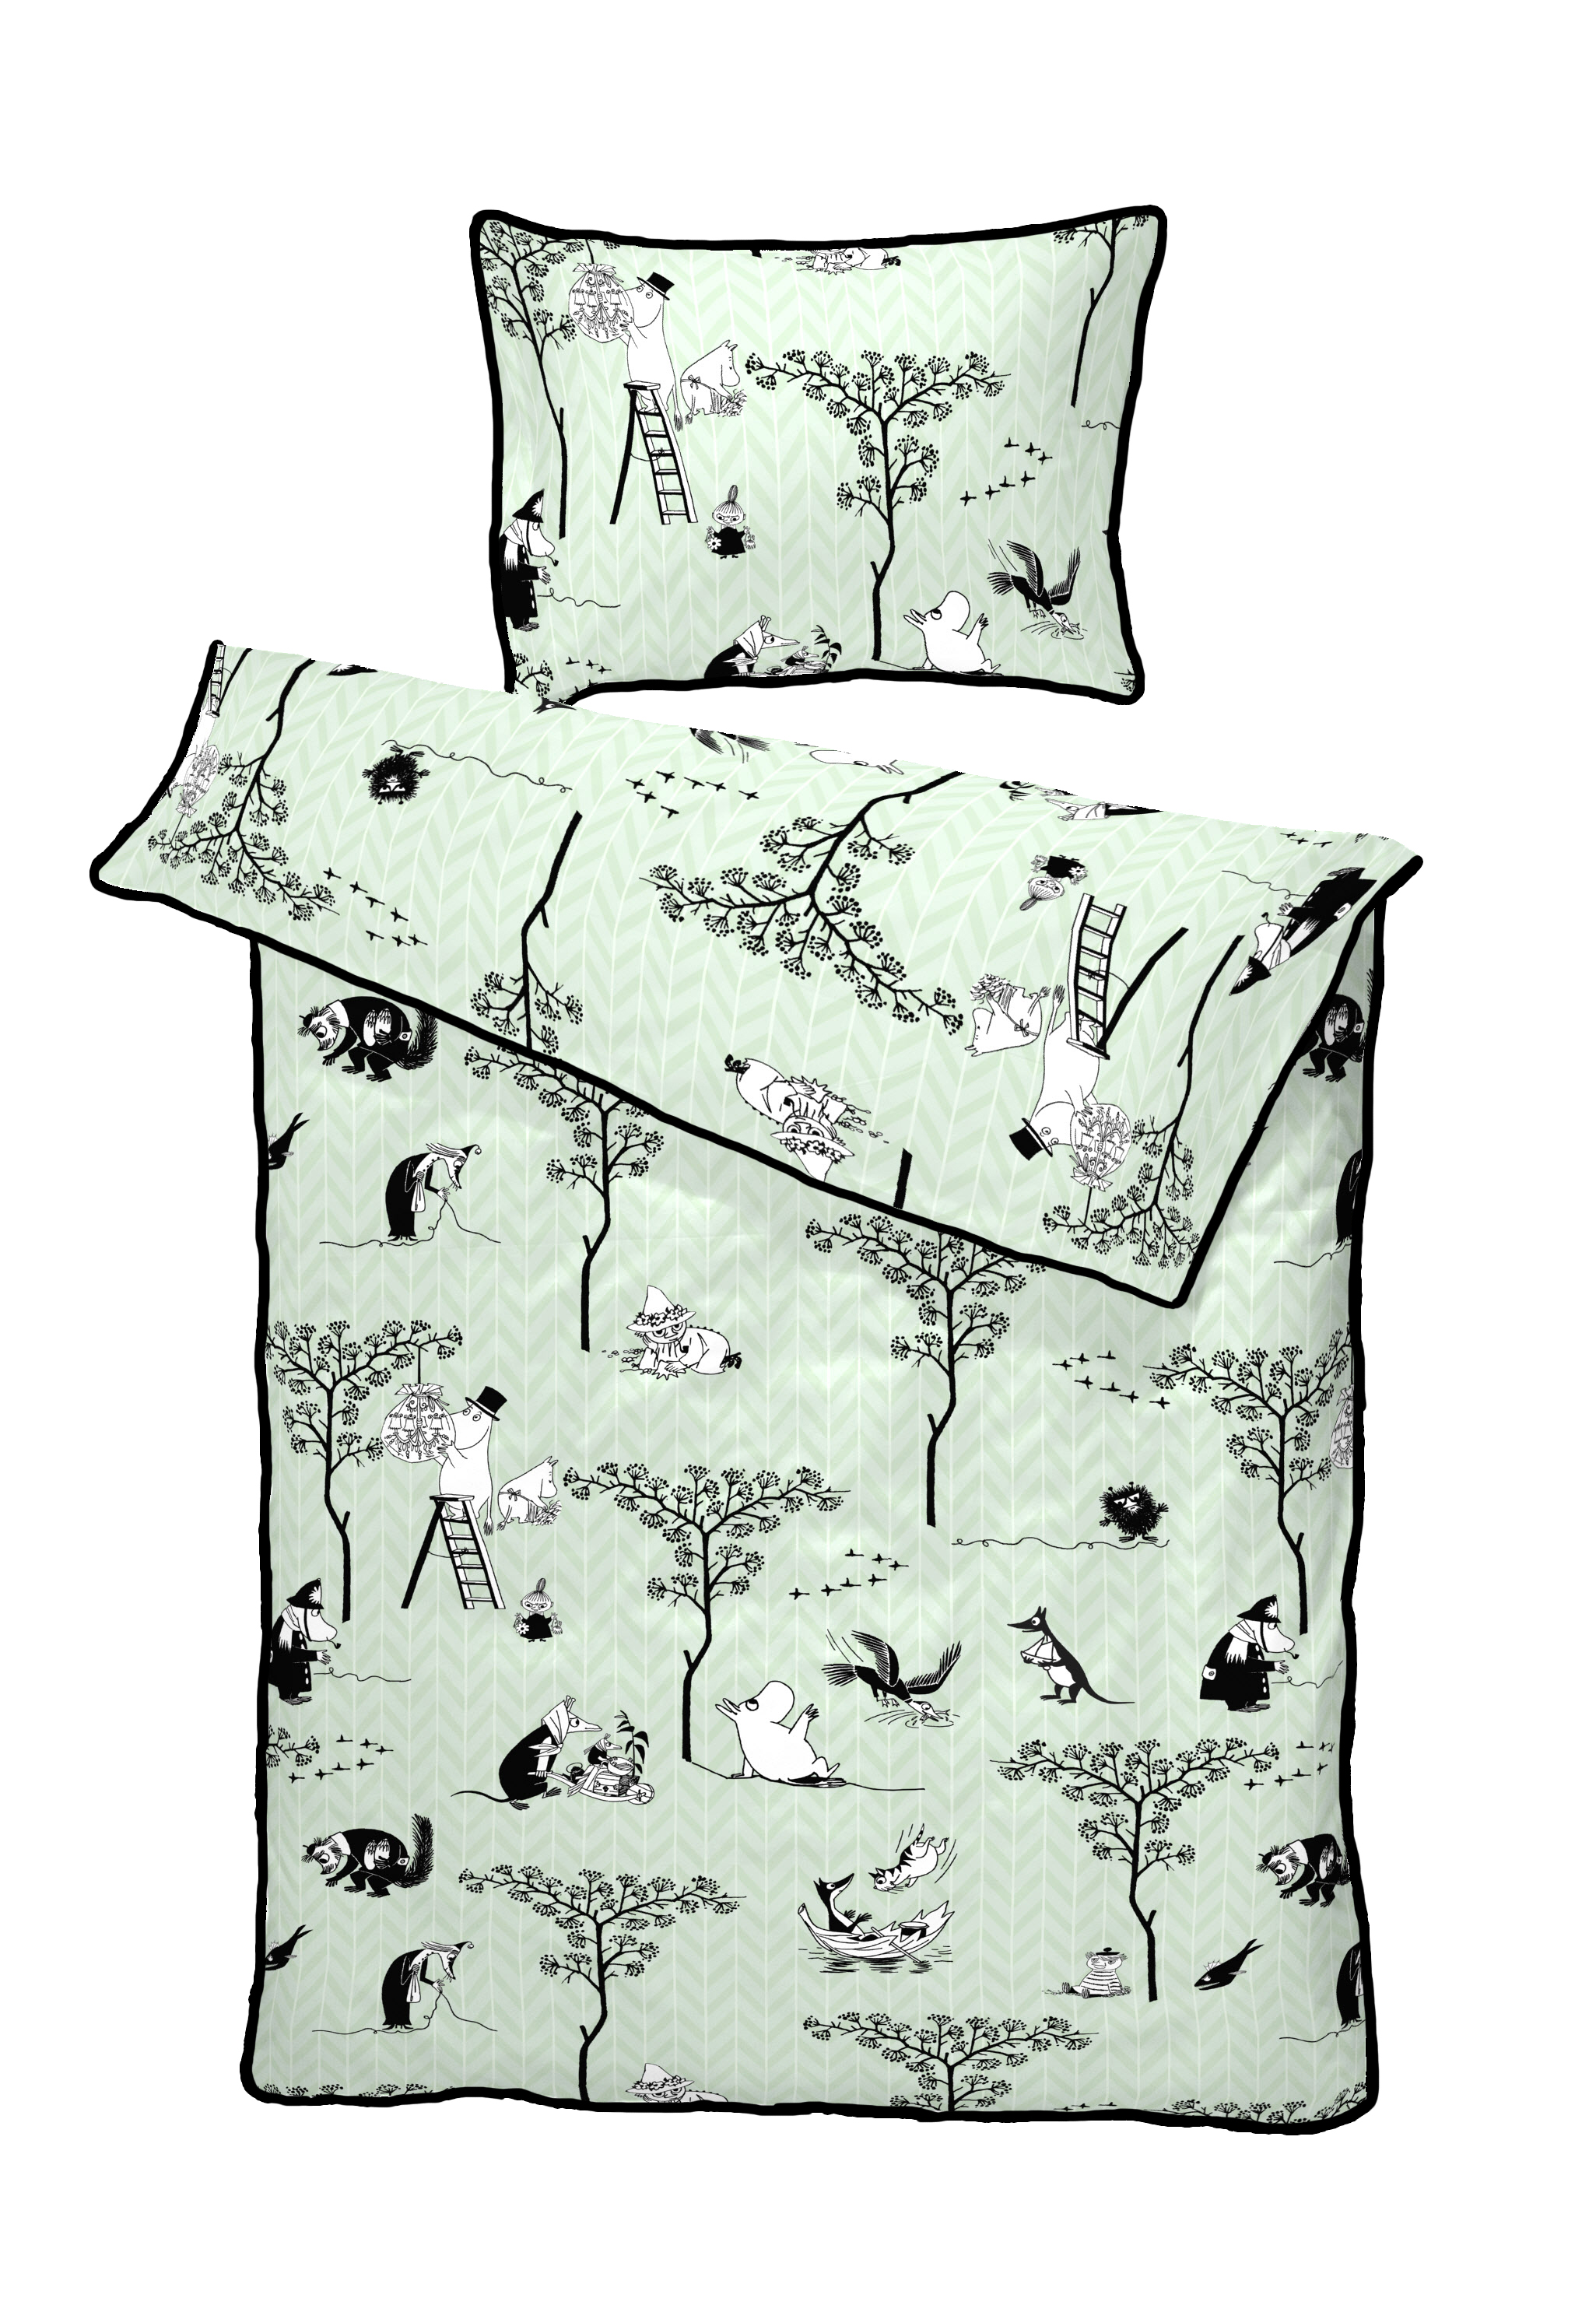 Turiform Moomin Treasure hunt bed set (not available in Finland)